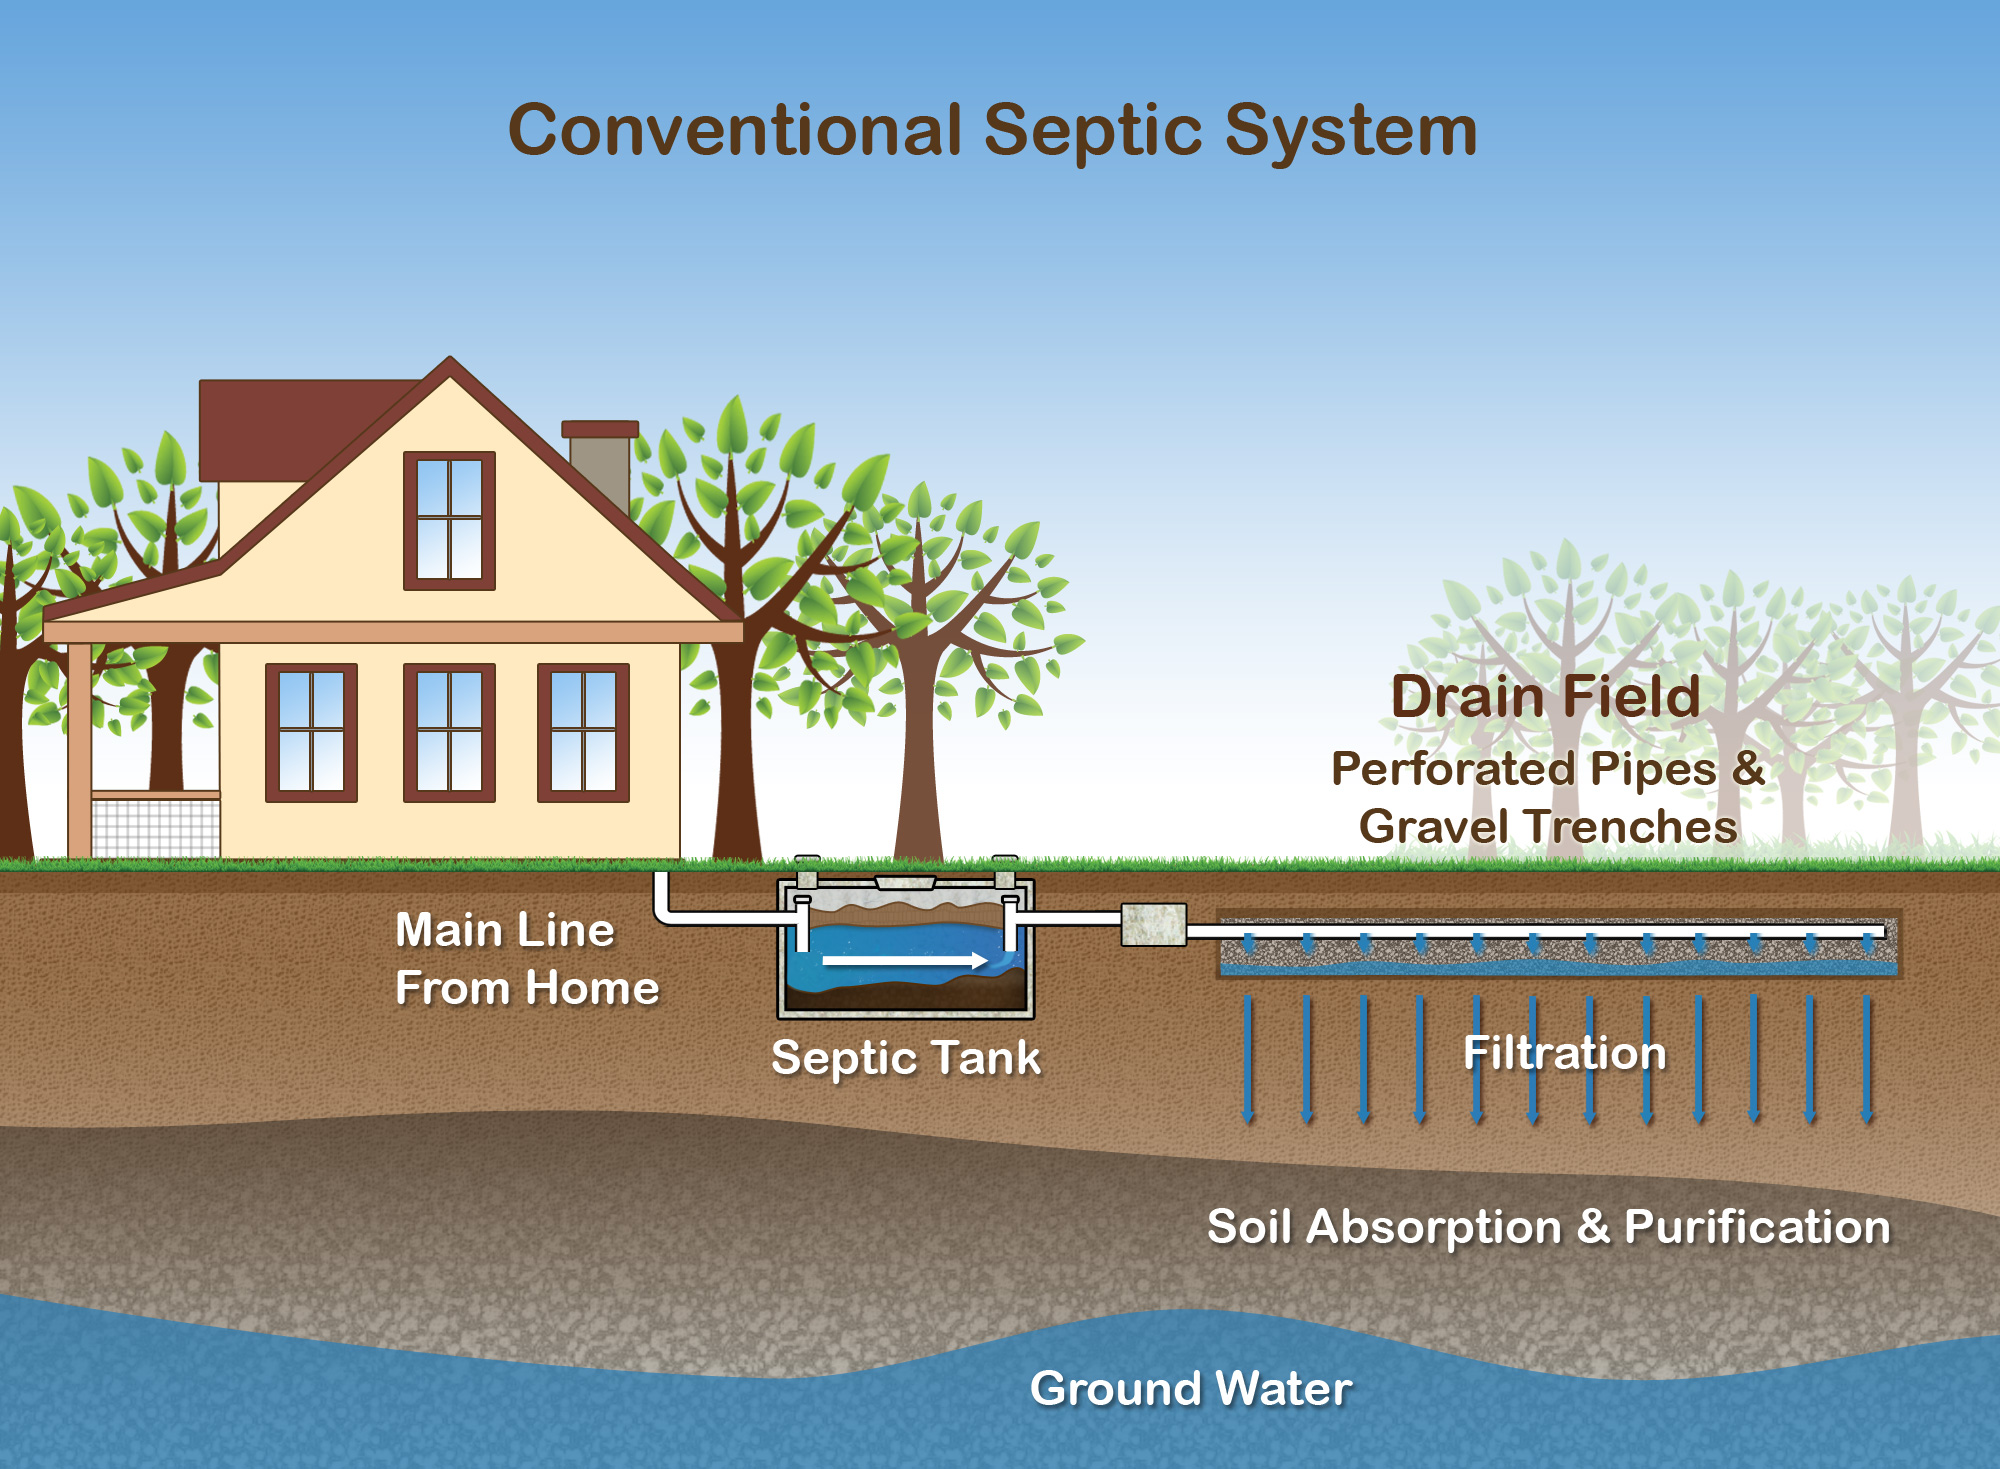 septicsystem-home-field-profile-r130520.jpg